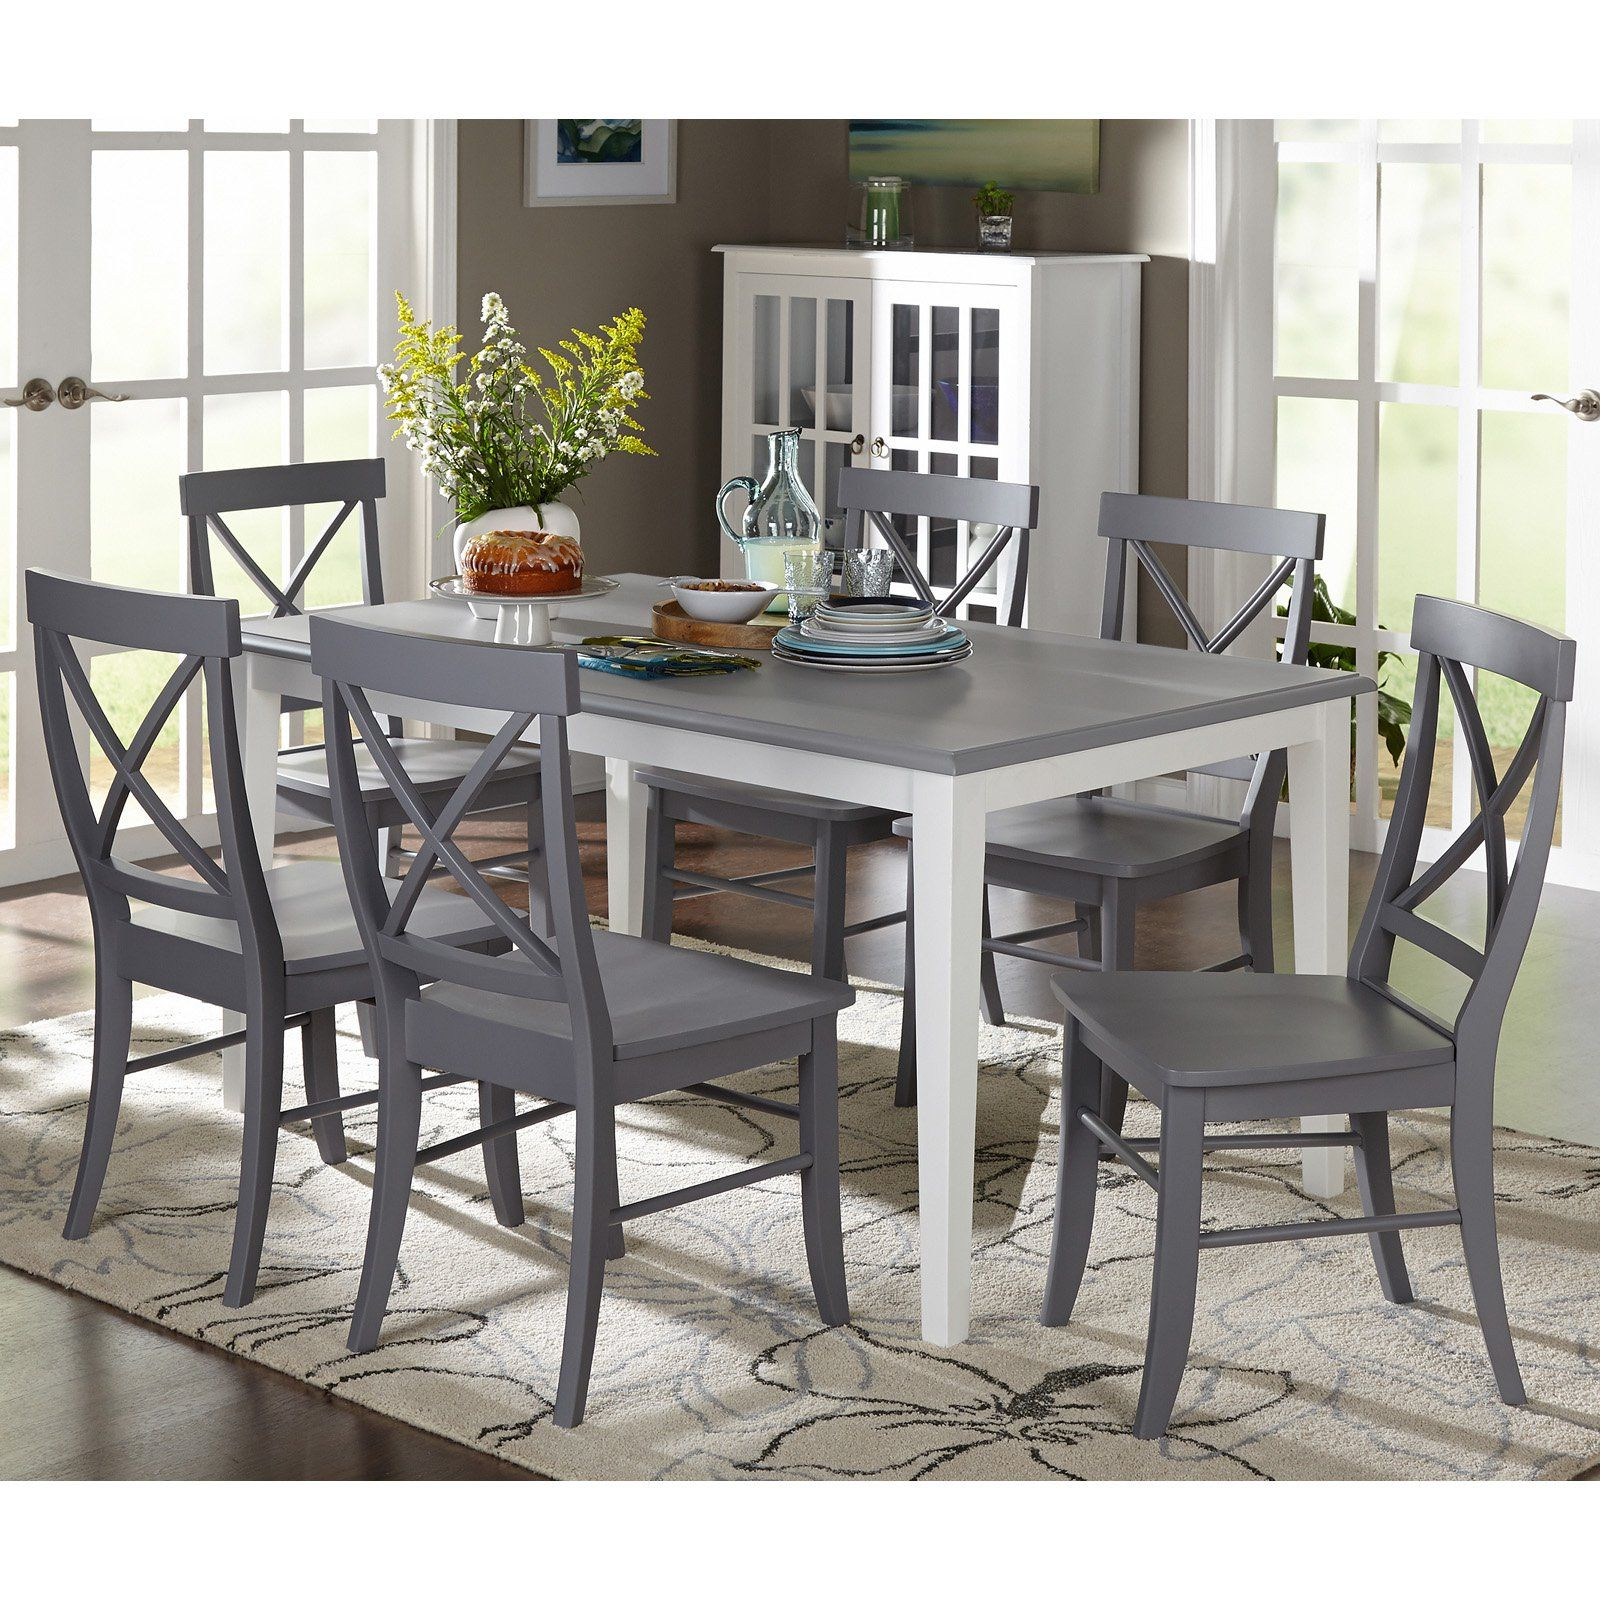 Target Marketing Systems Helena 7 Piece Dining Table Set -